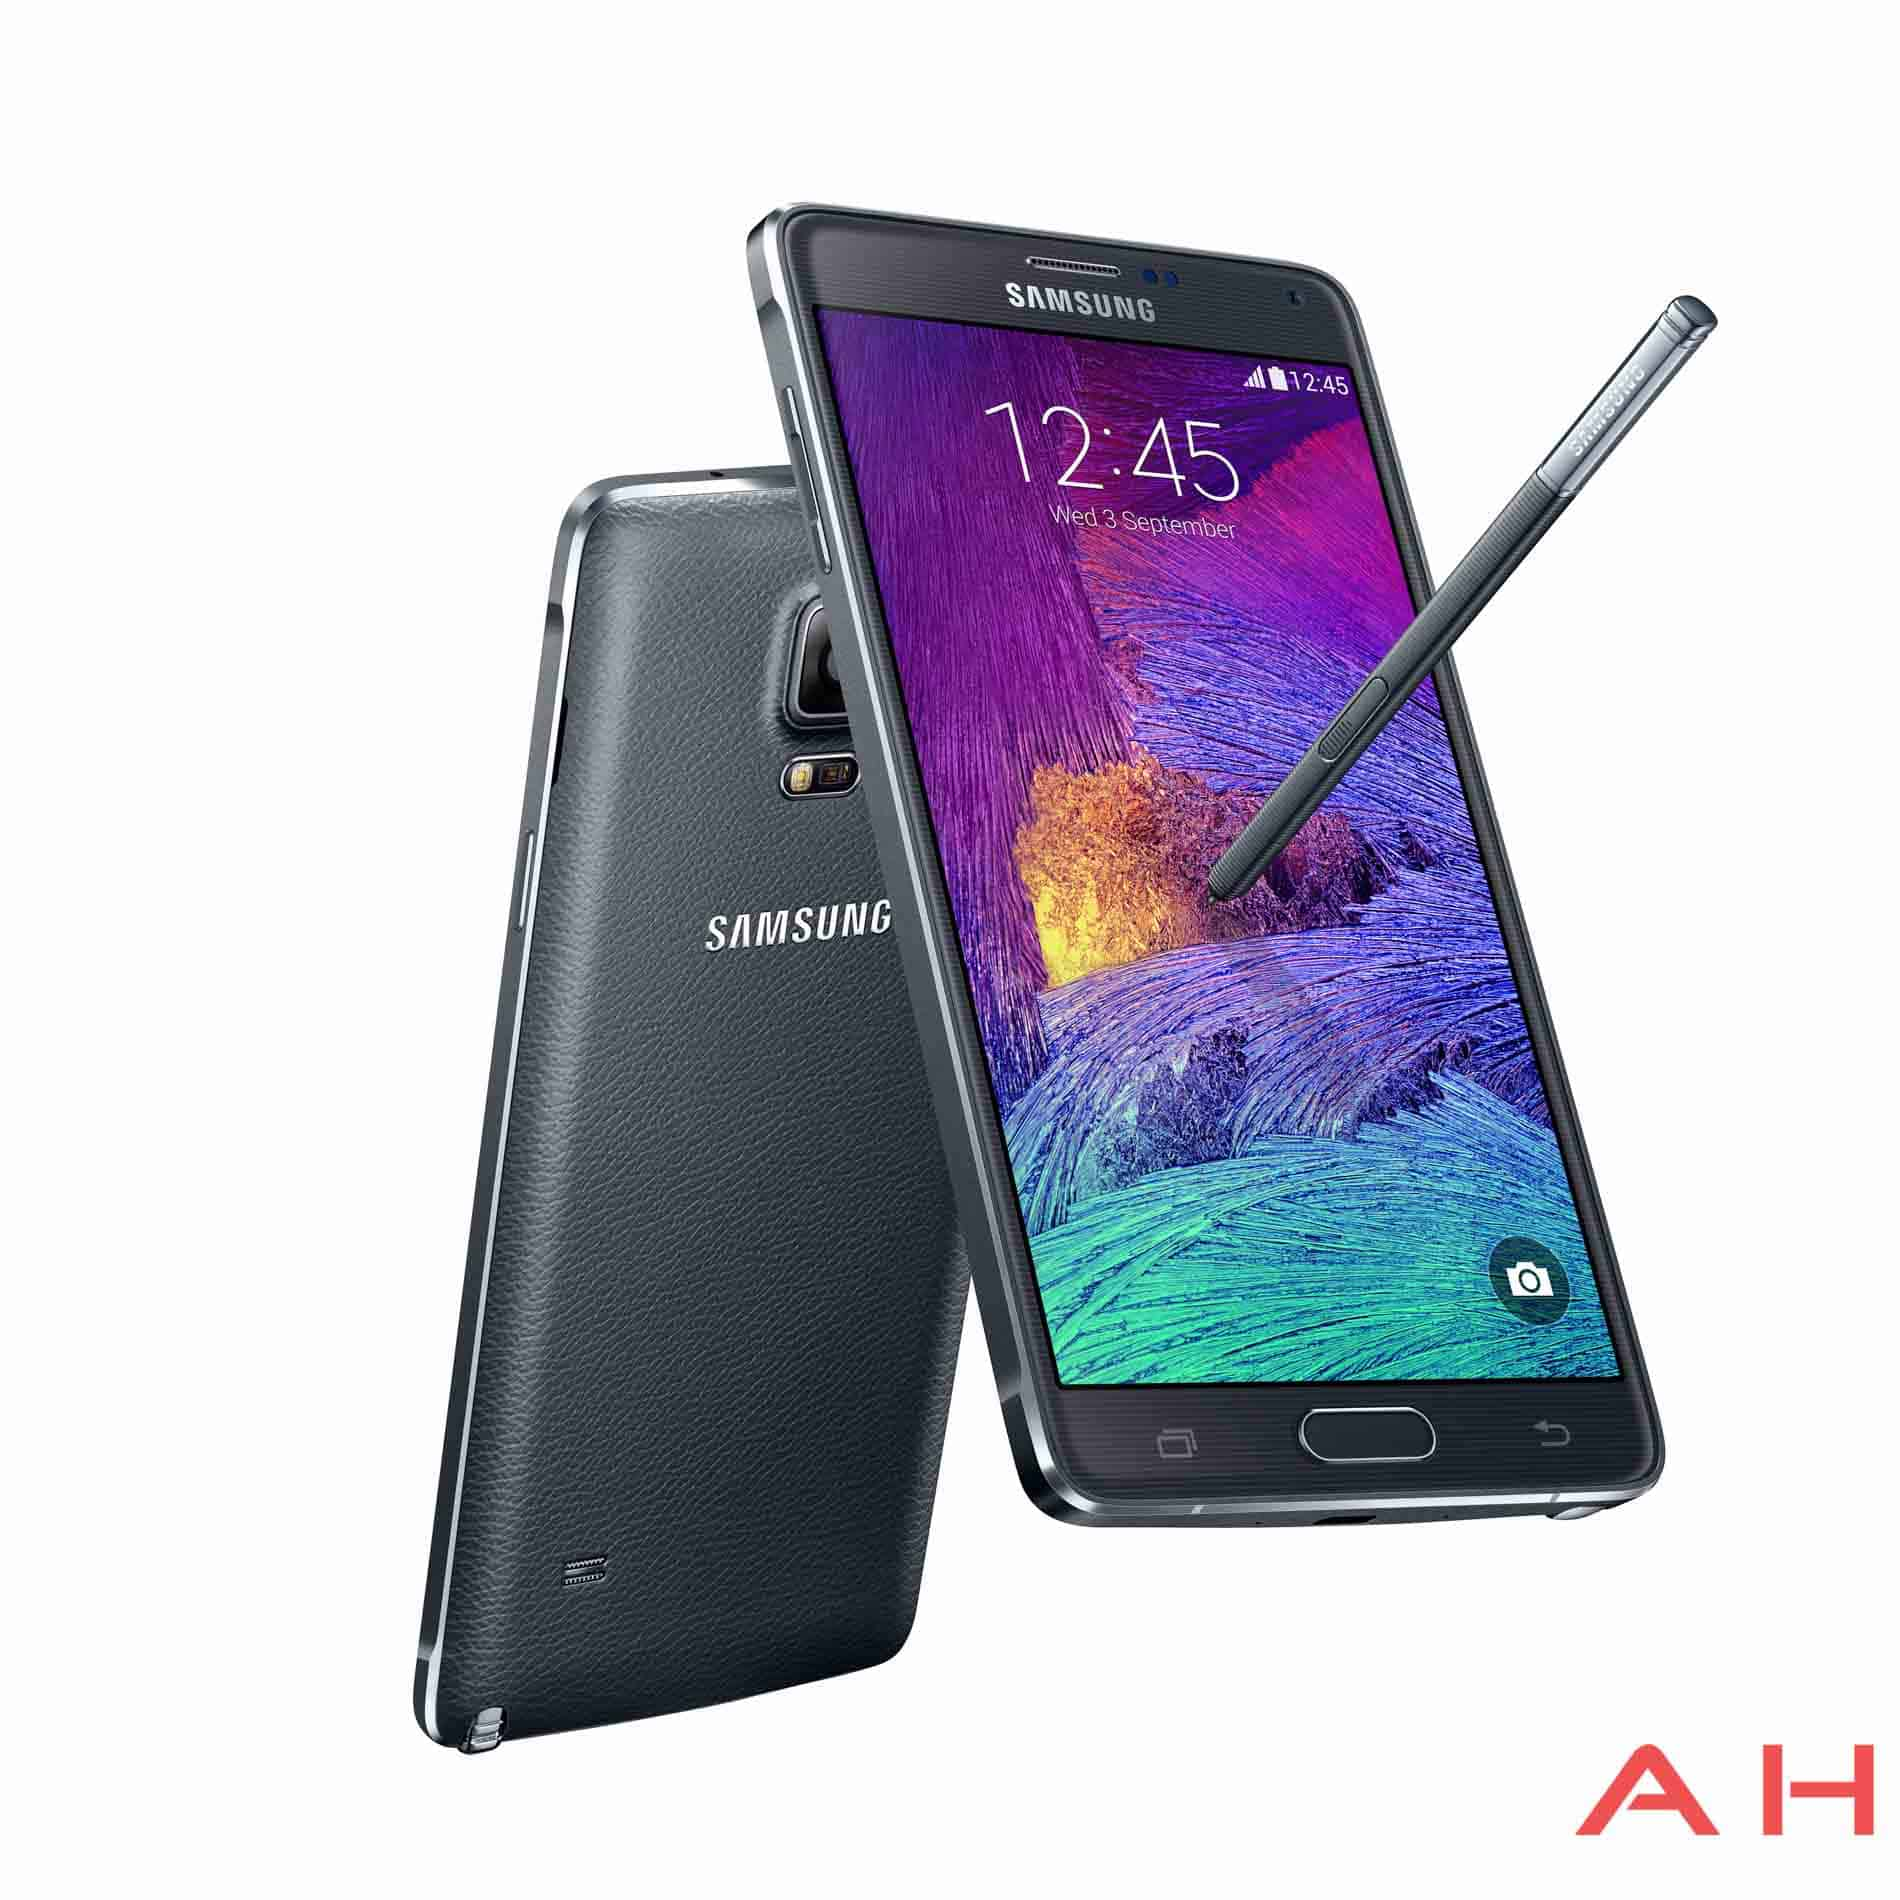 Samsung-Galaxy-Note-4-AH-1